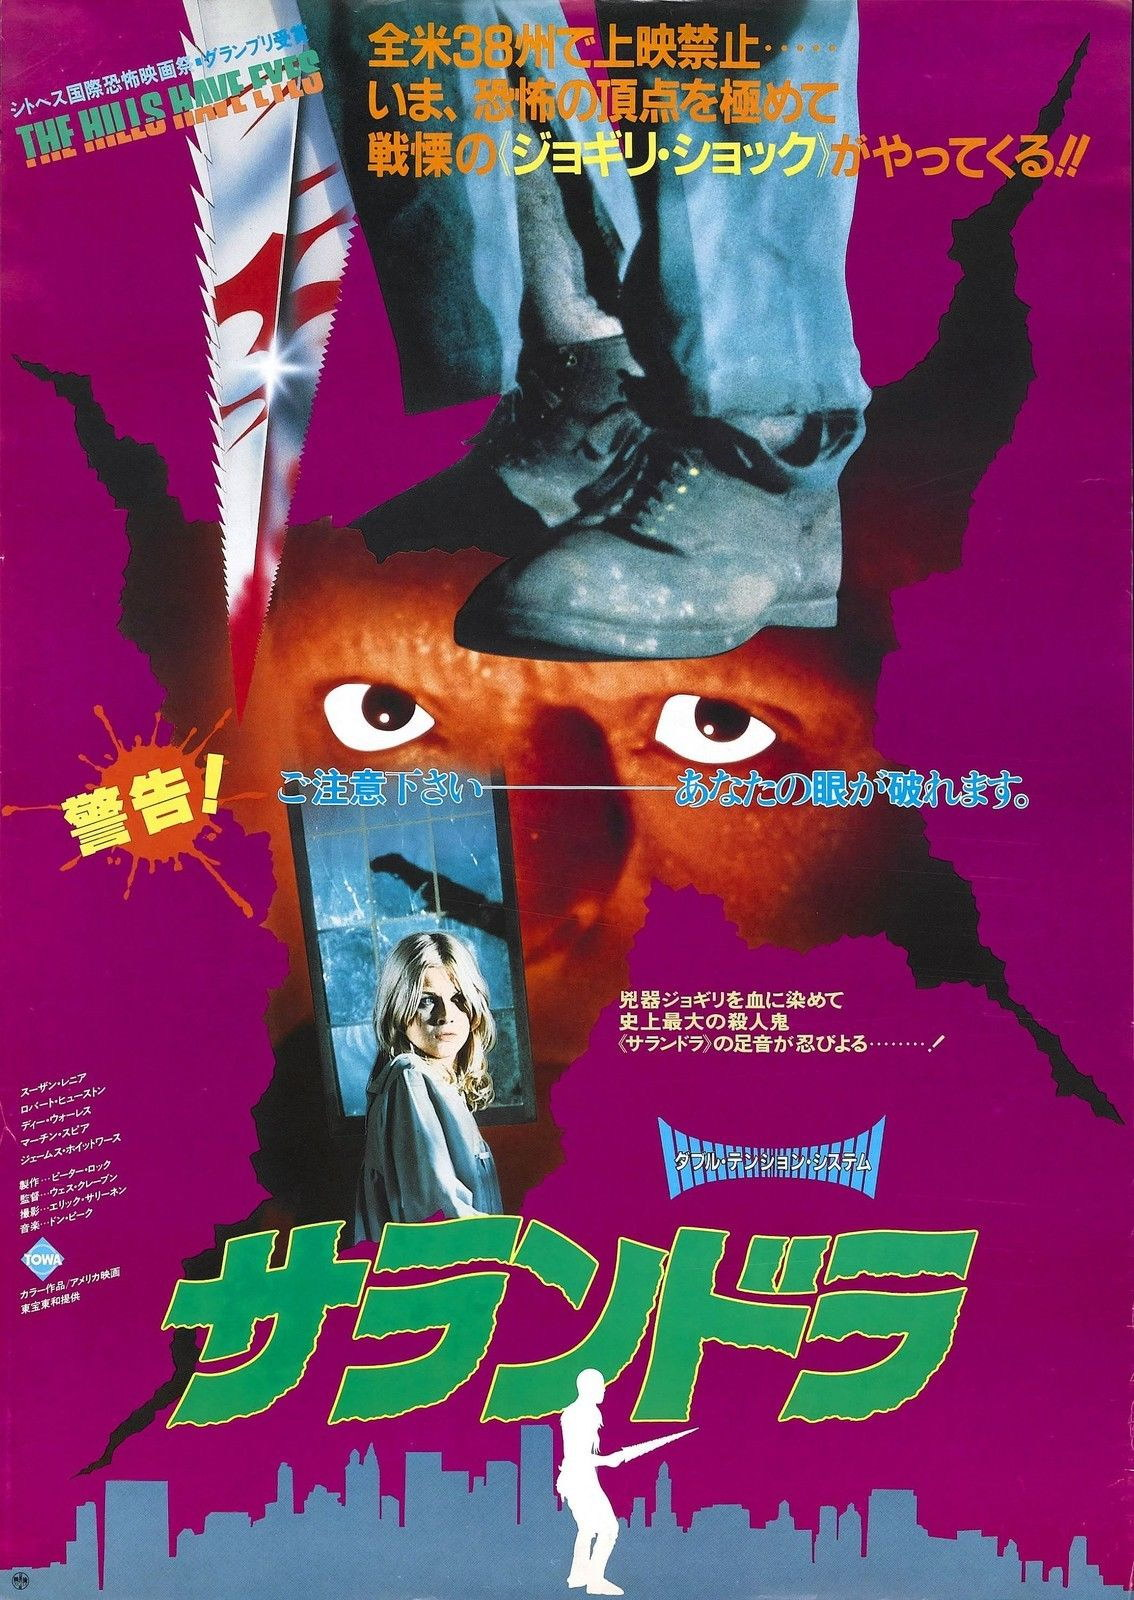 73760-THE-HILLS-HAVE-EYES-Movie-RARE-Japanese-Version-Wall-Print-Poster-Affiche